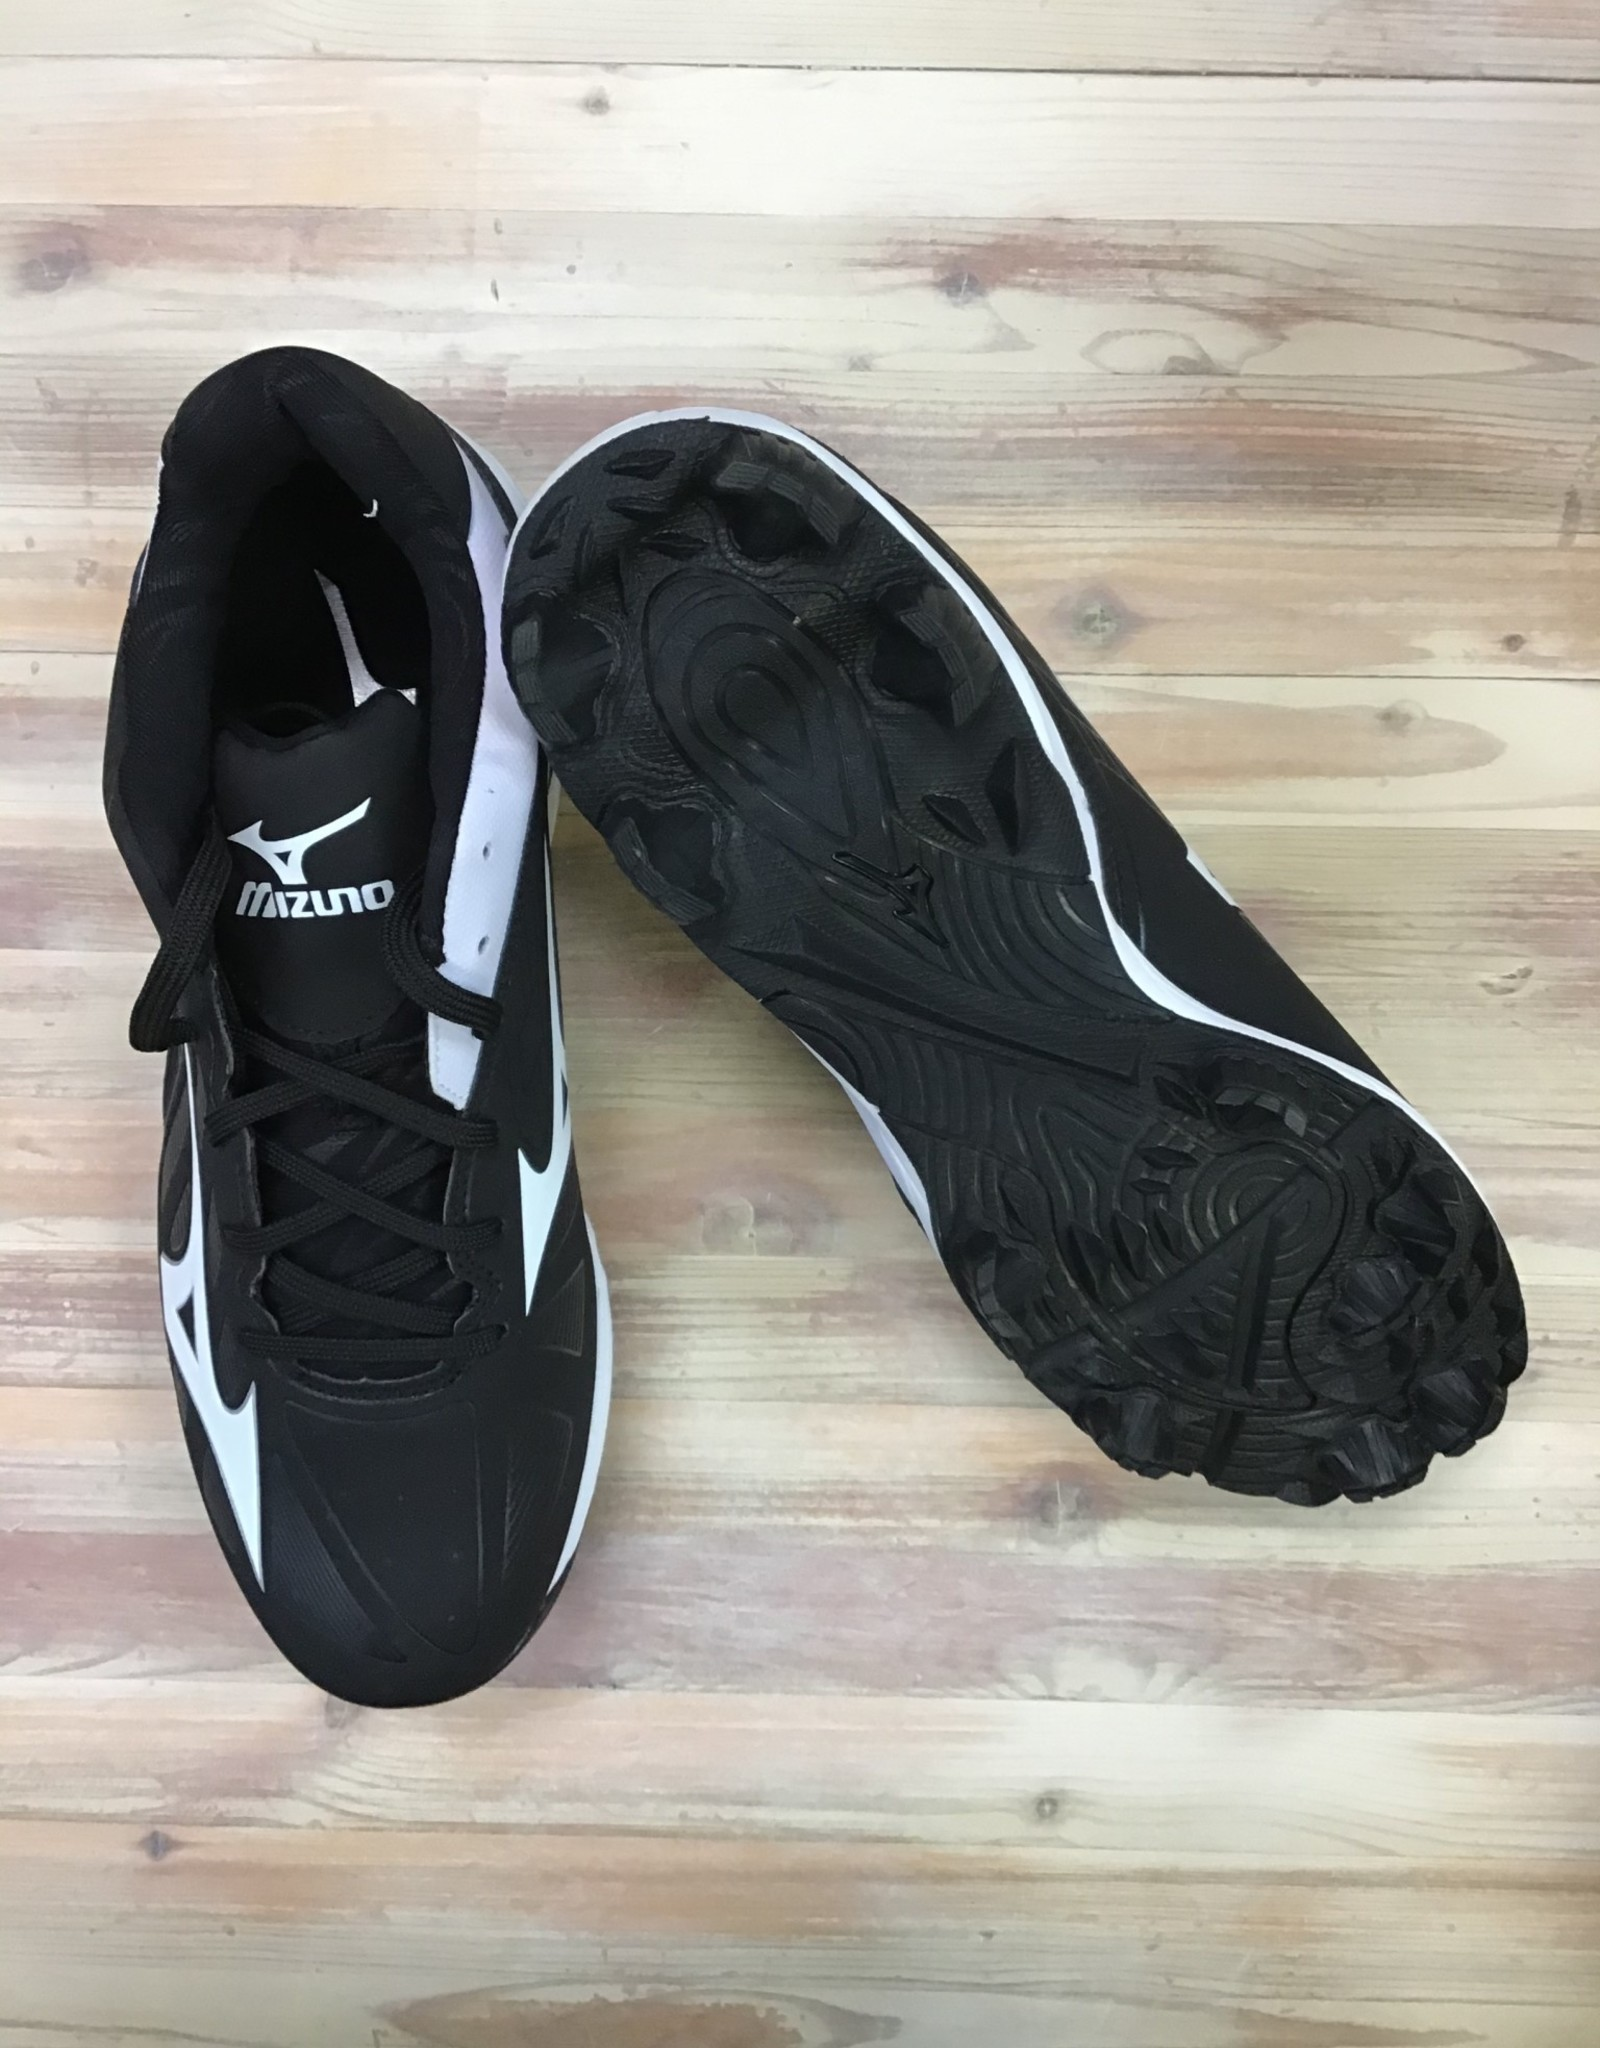 Mizuno Mizuno 9-Spike Adv. Franchise 8 Men's